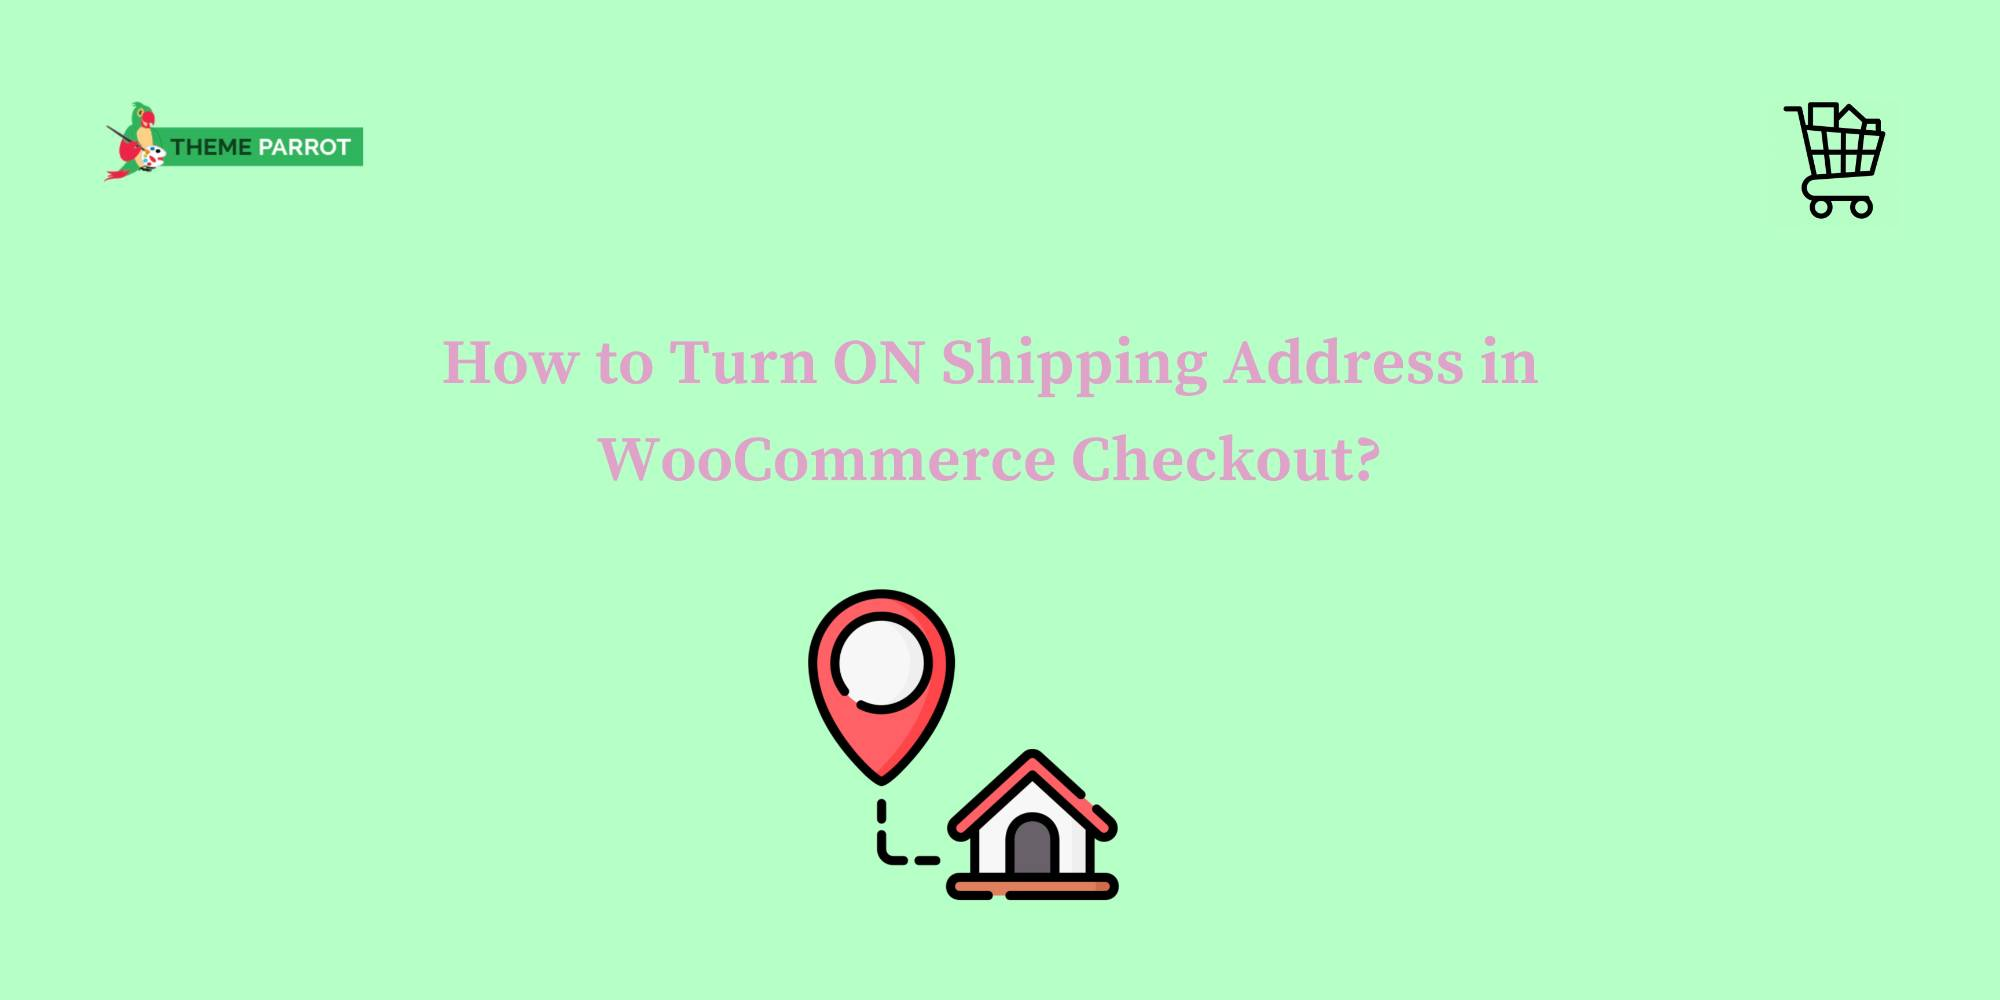 how to turn on shipping address in woocommerce checkout